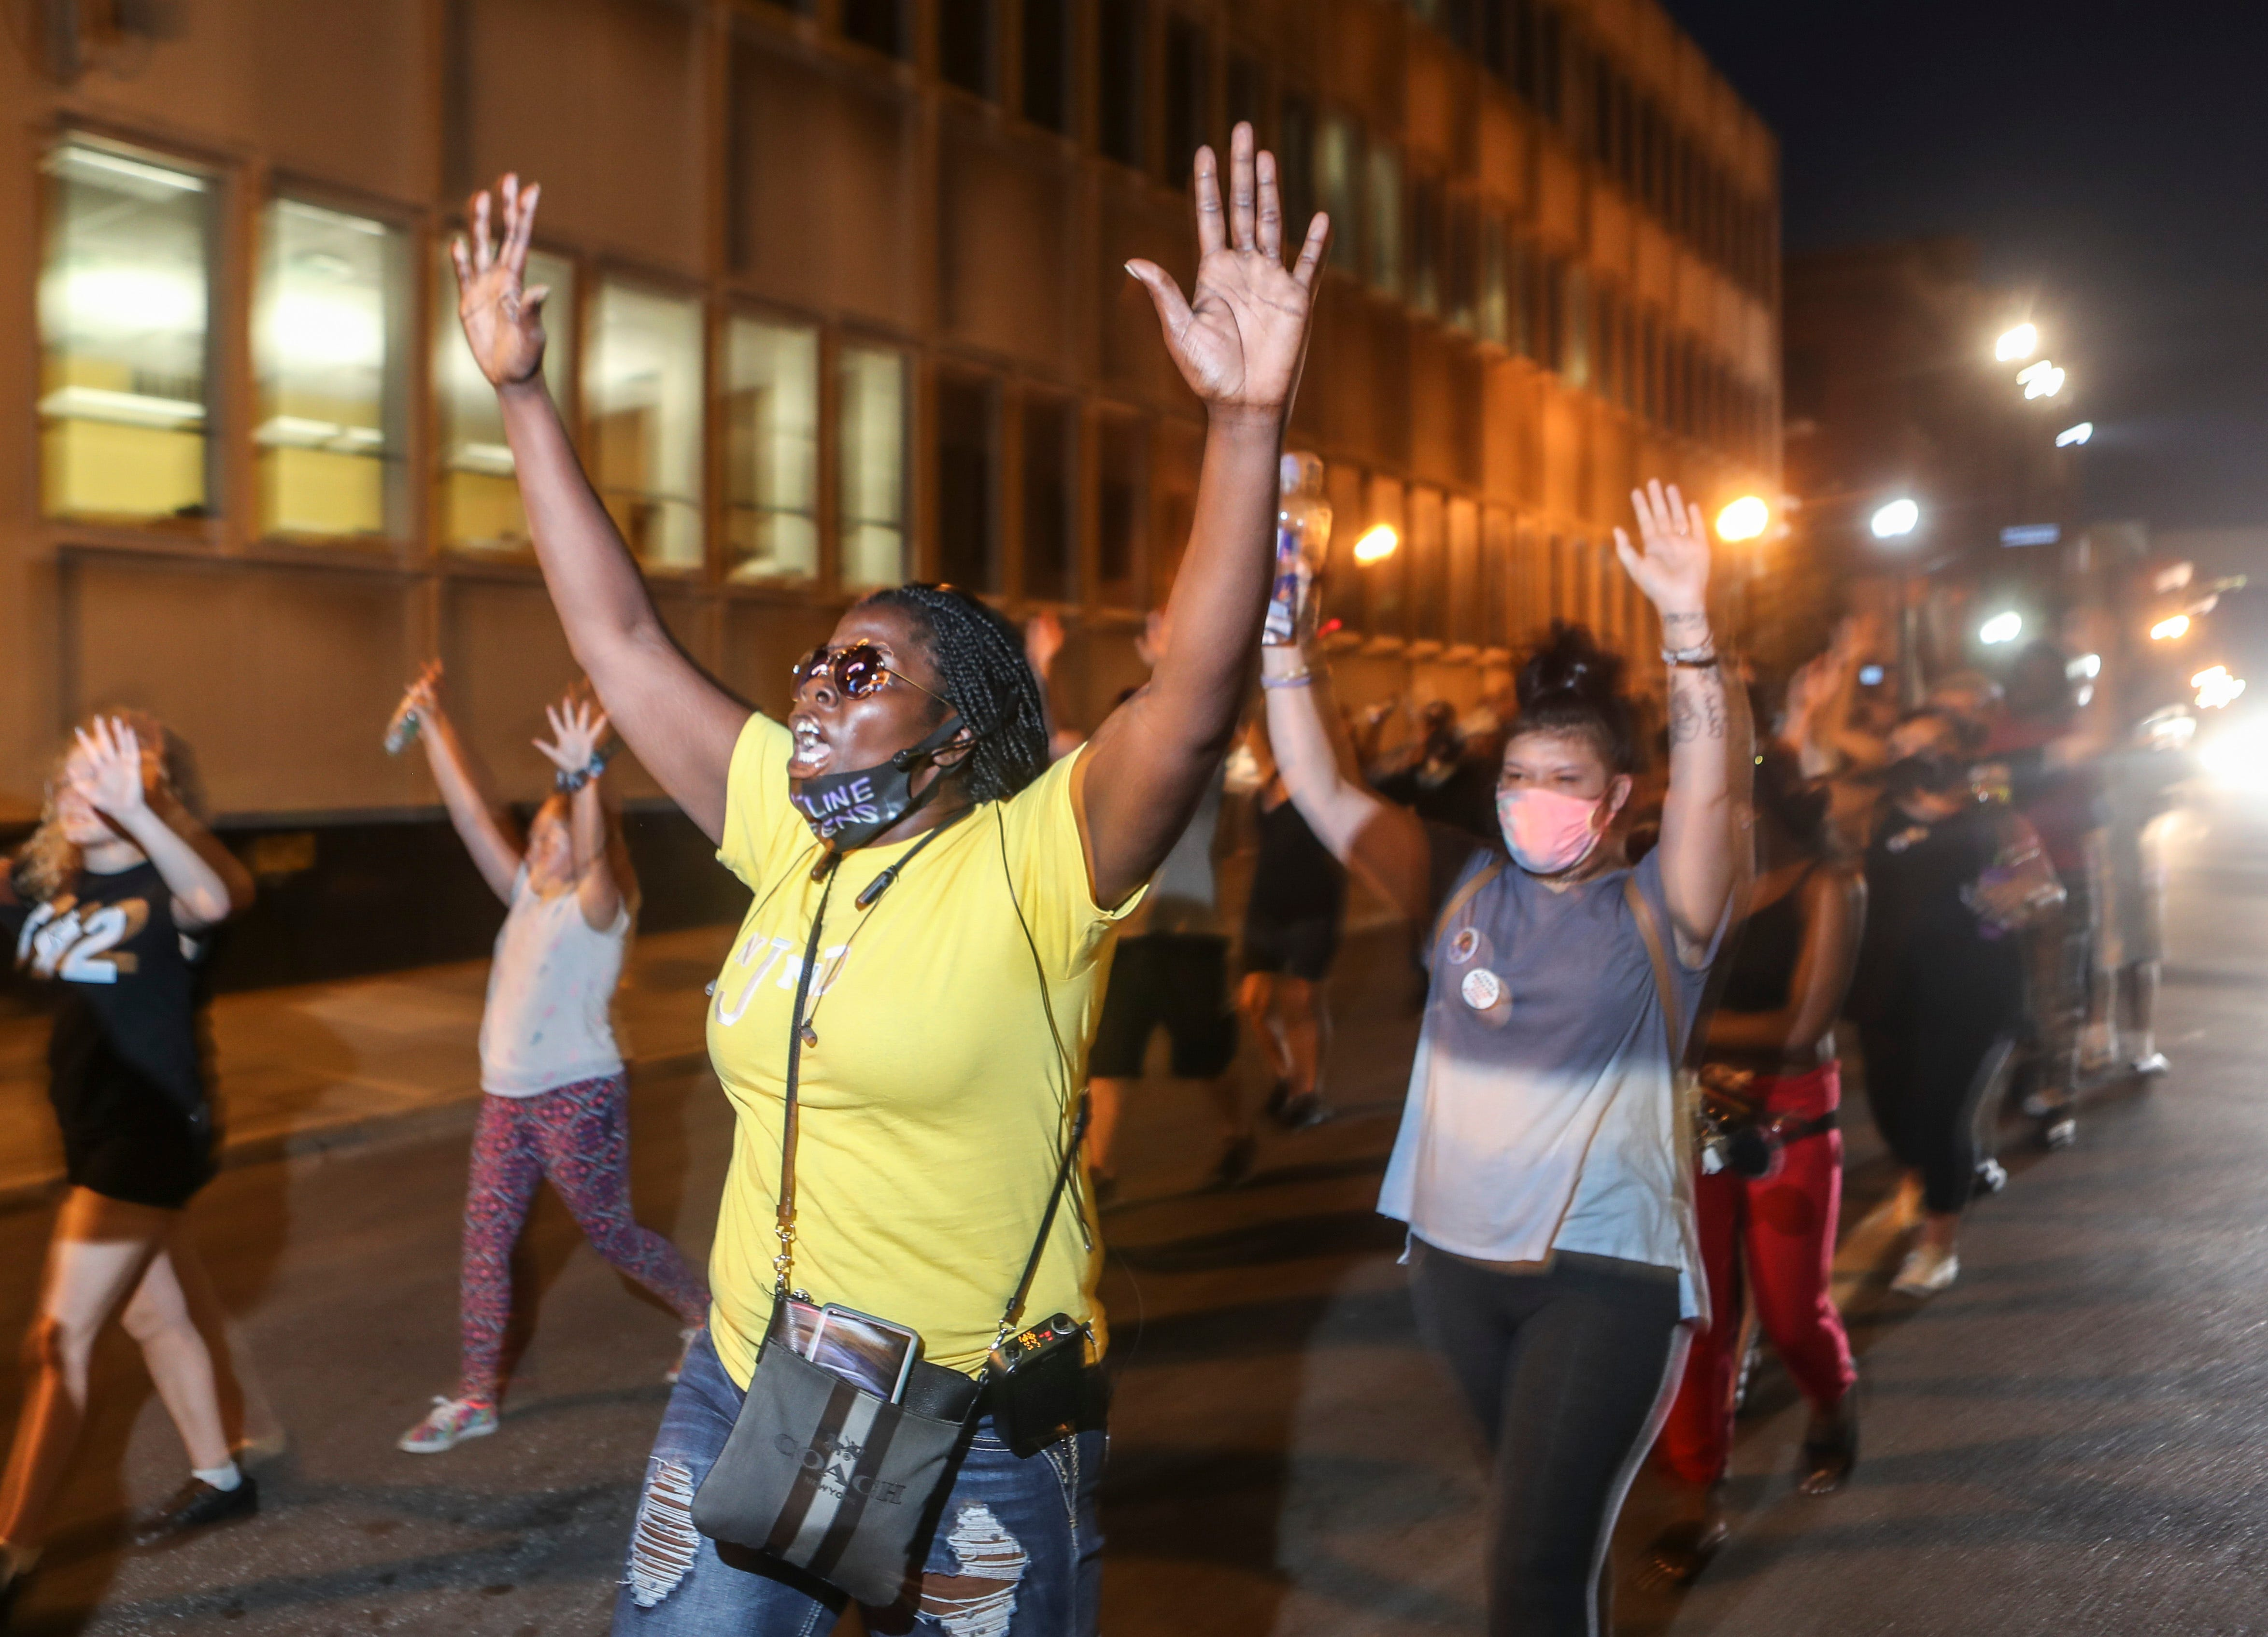 Demonstrators raise their hands during a peaceful protest on July 31, 2020 demanding justice for the murder of Breonna Taylor. Chants of 'Say her name...Breonna Taylor' as well as 'David McAtee' and 'Tyler Gerth' could be heard in the downtown streets of Louisville at night.